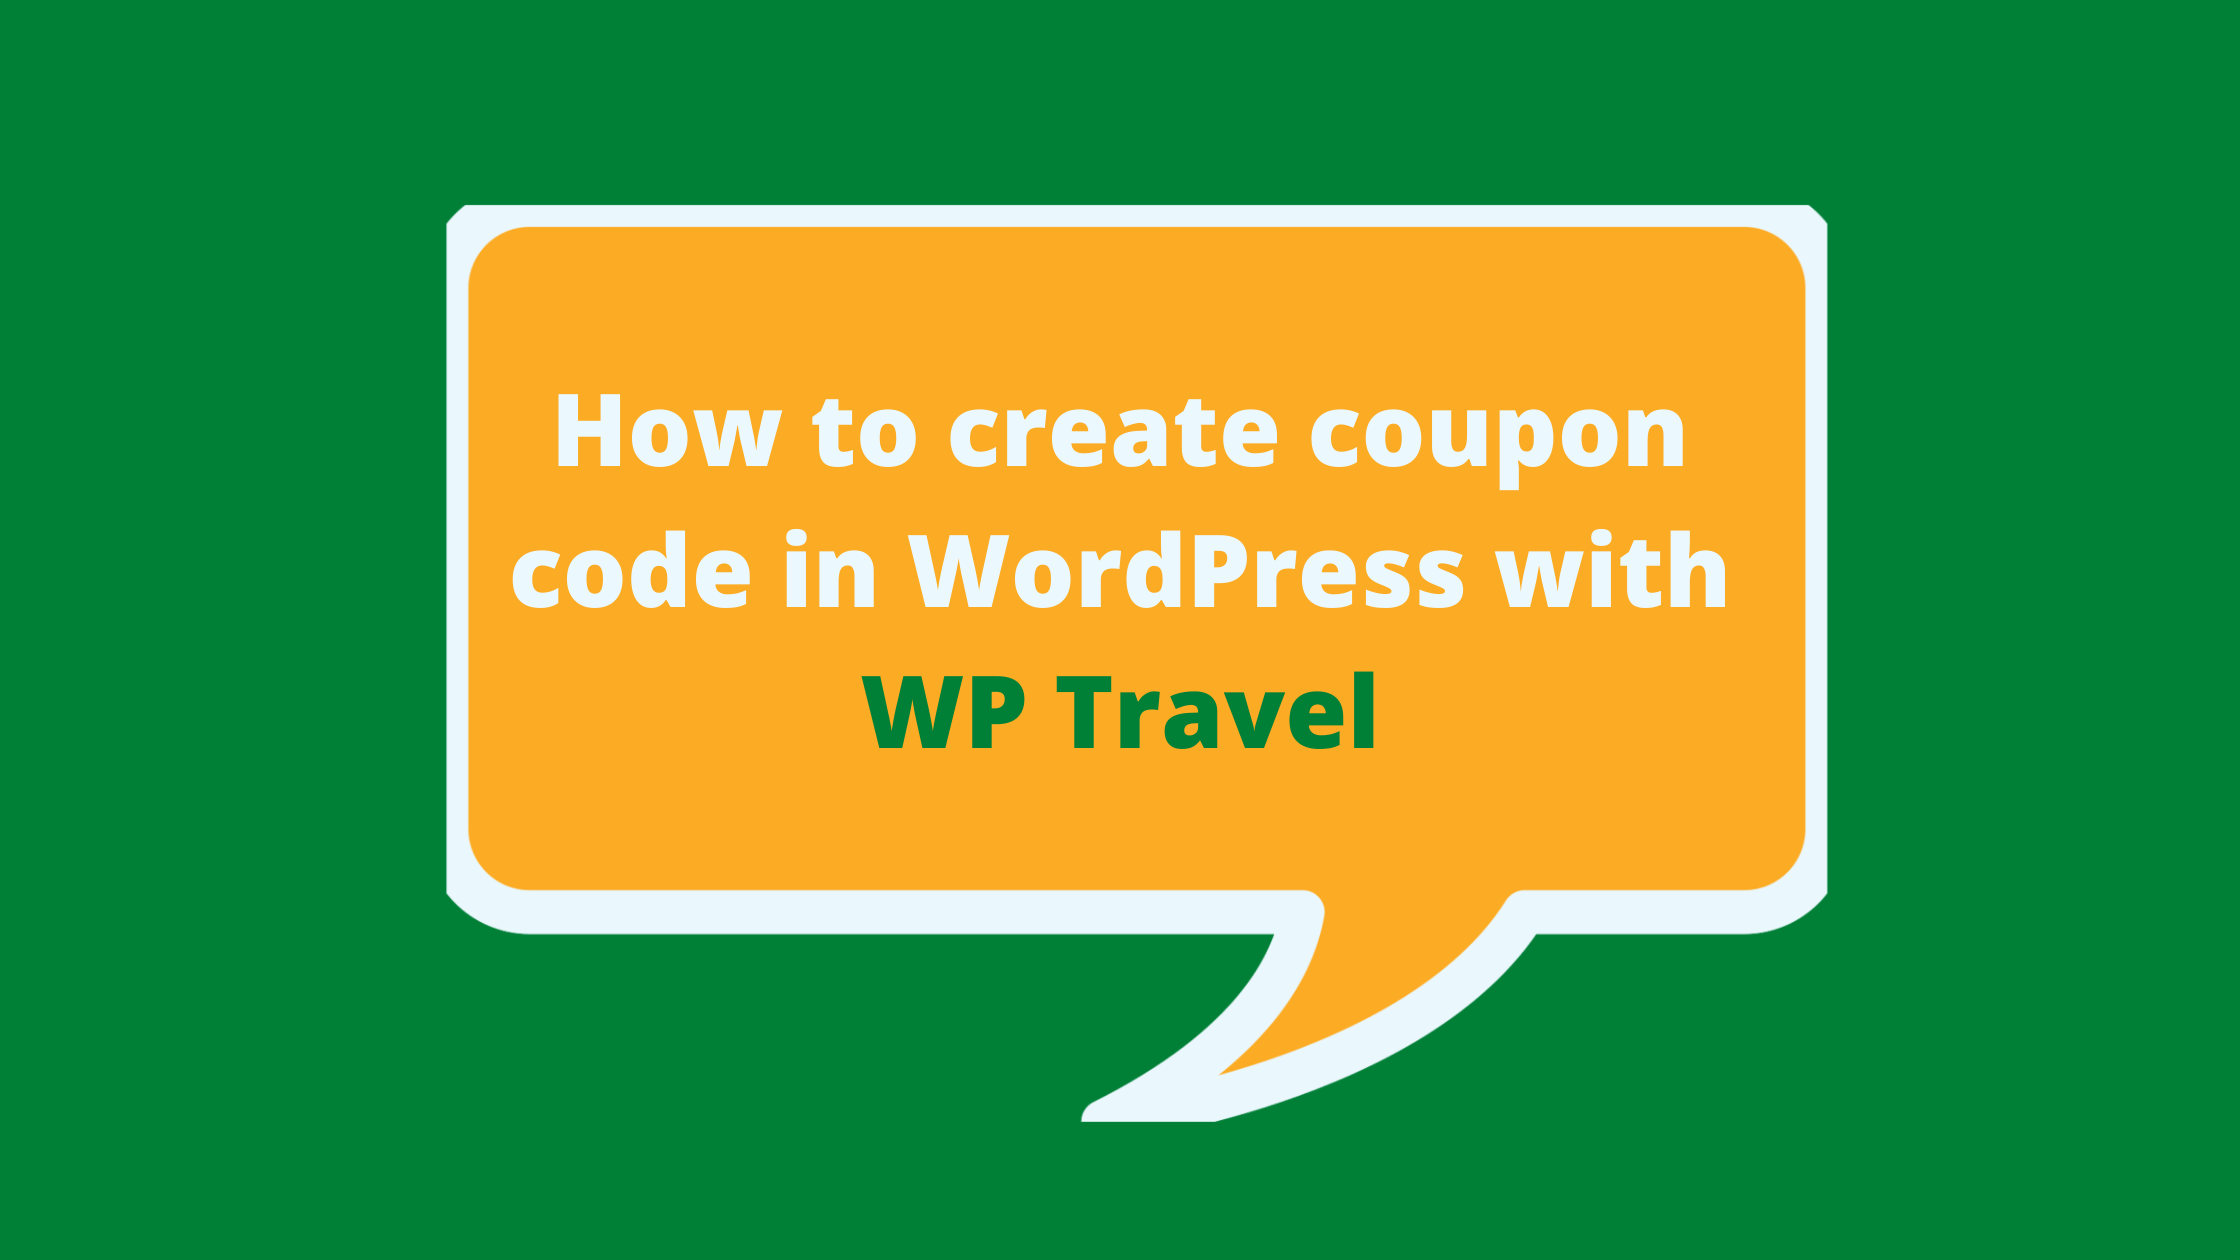 How to create coupon code in WordPress with WP Travel